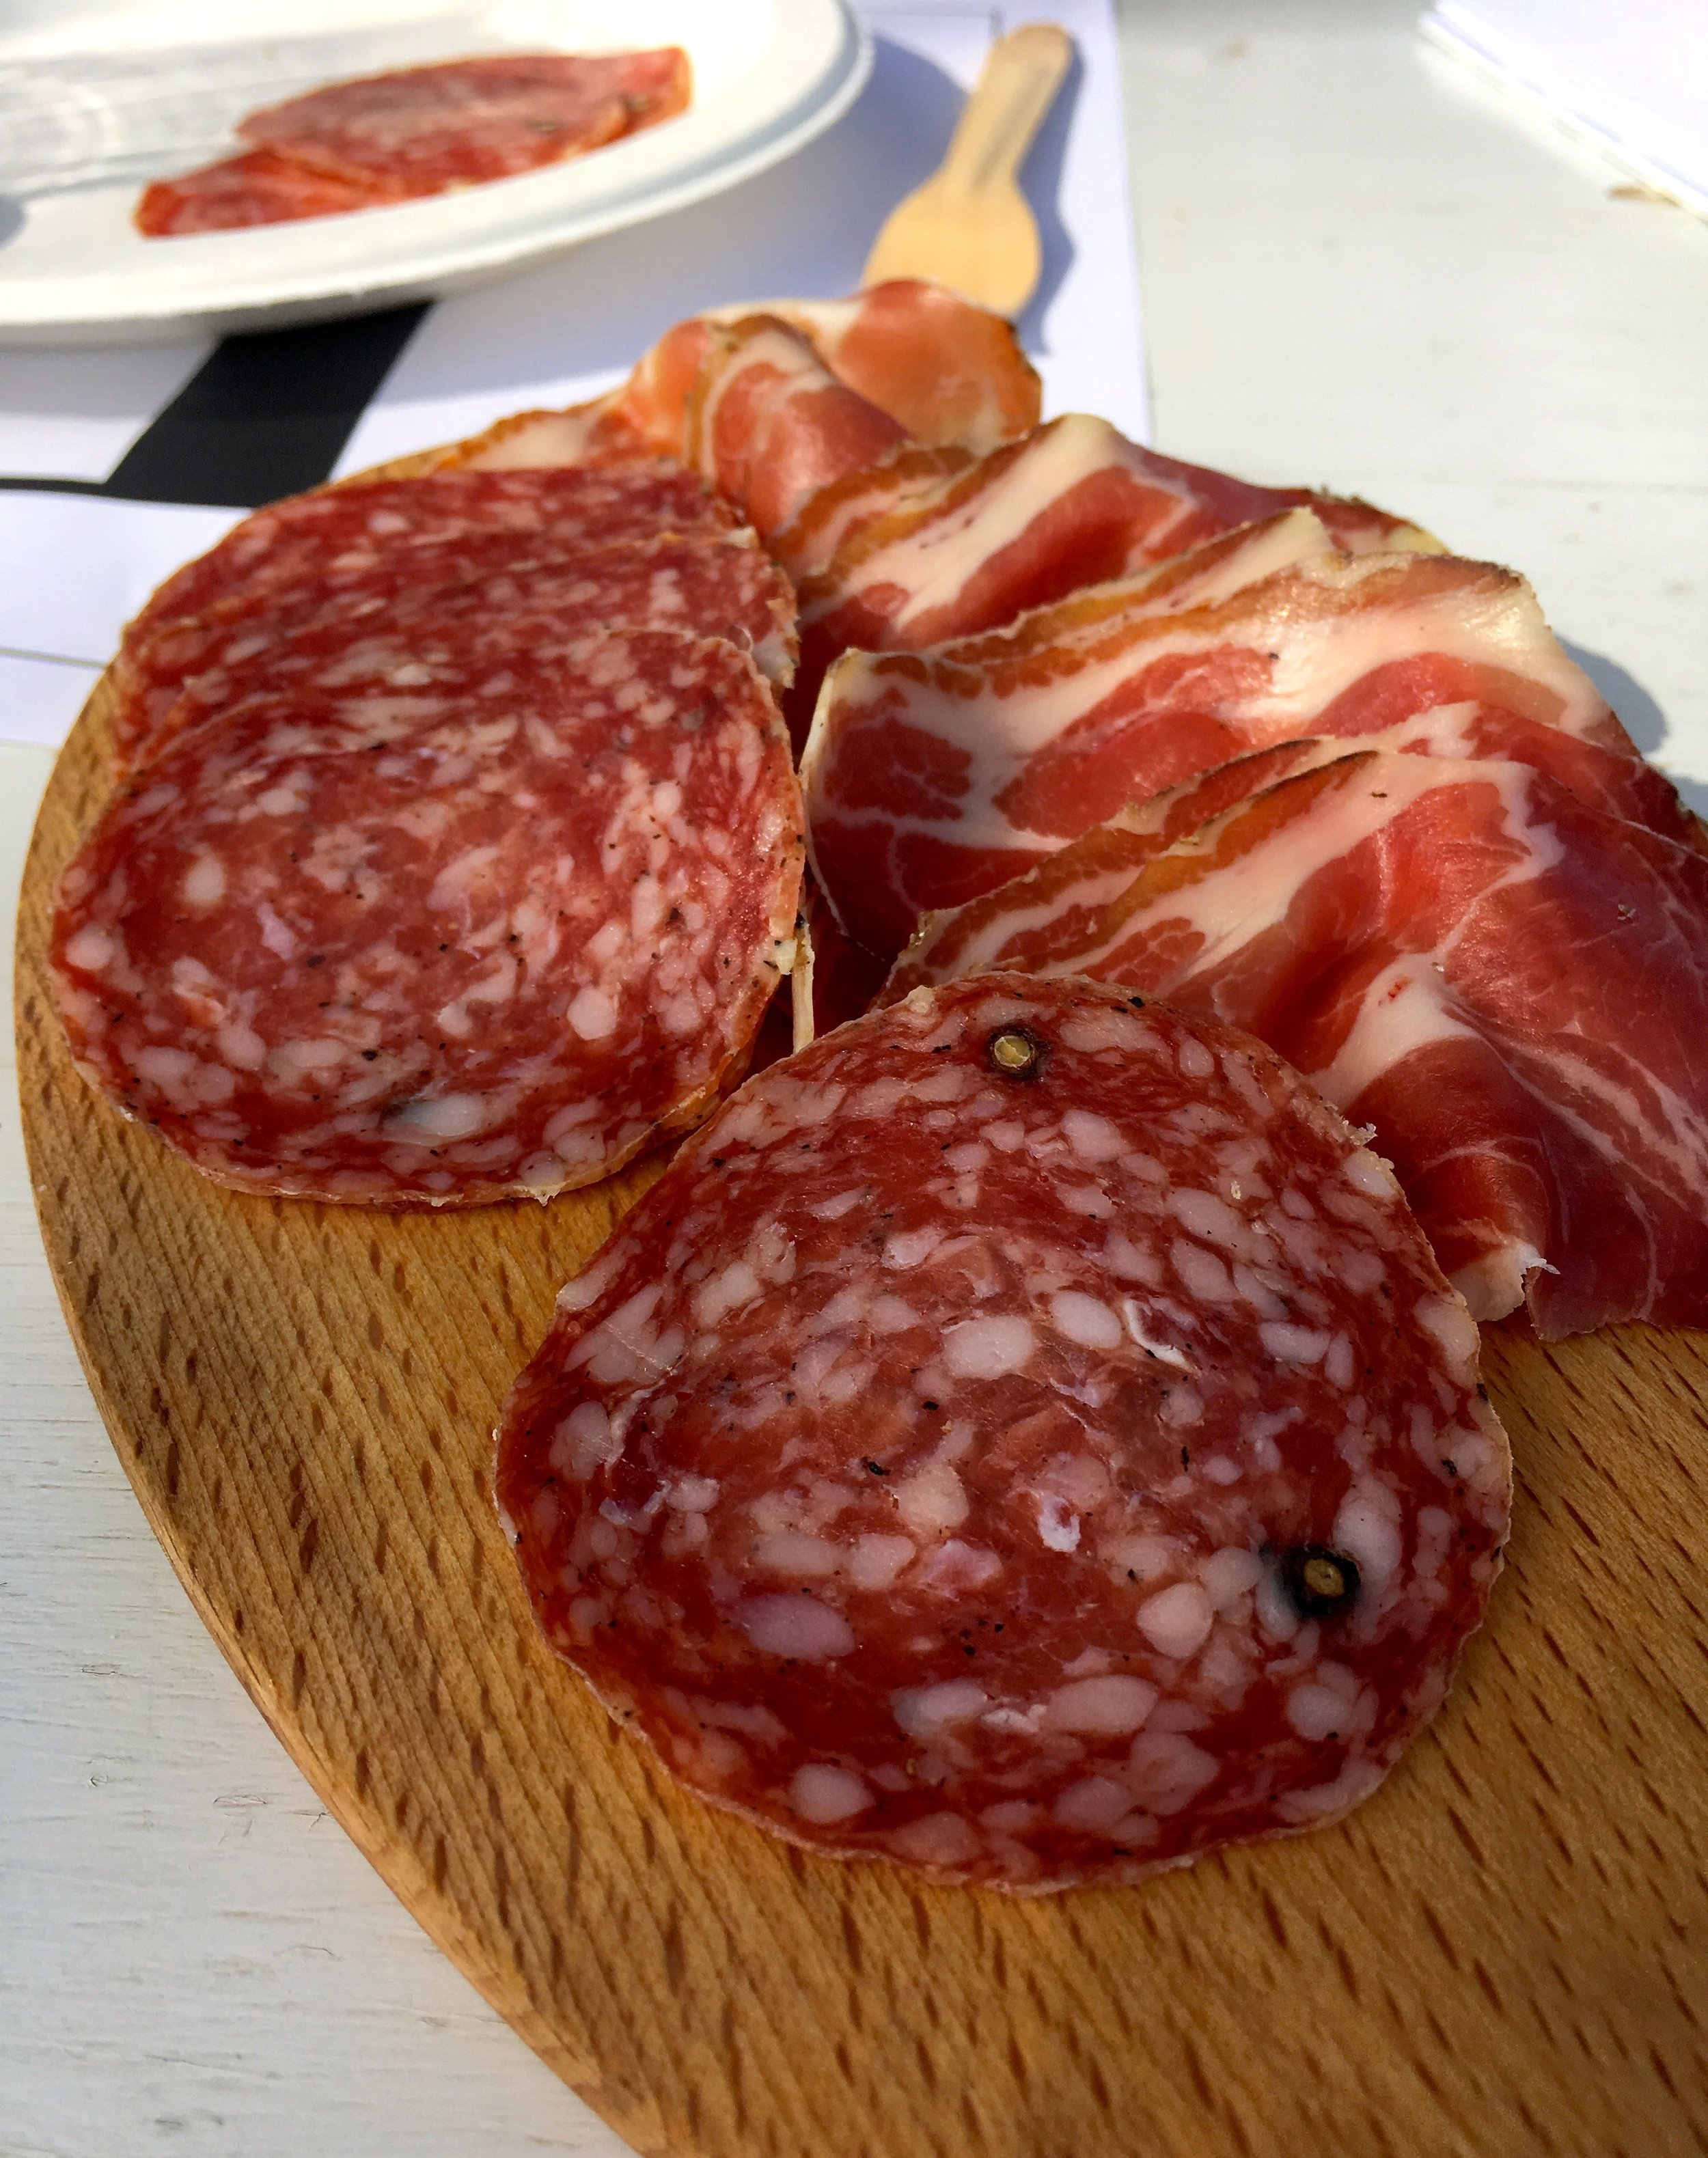 local charcuterie to accompany the wines